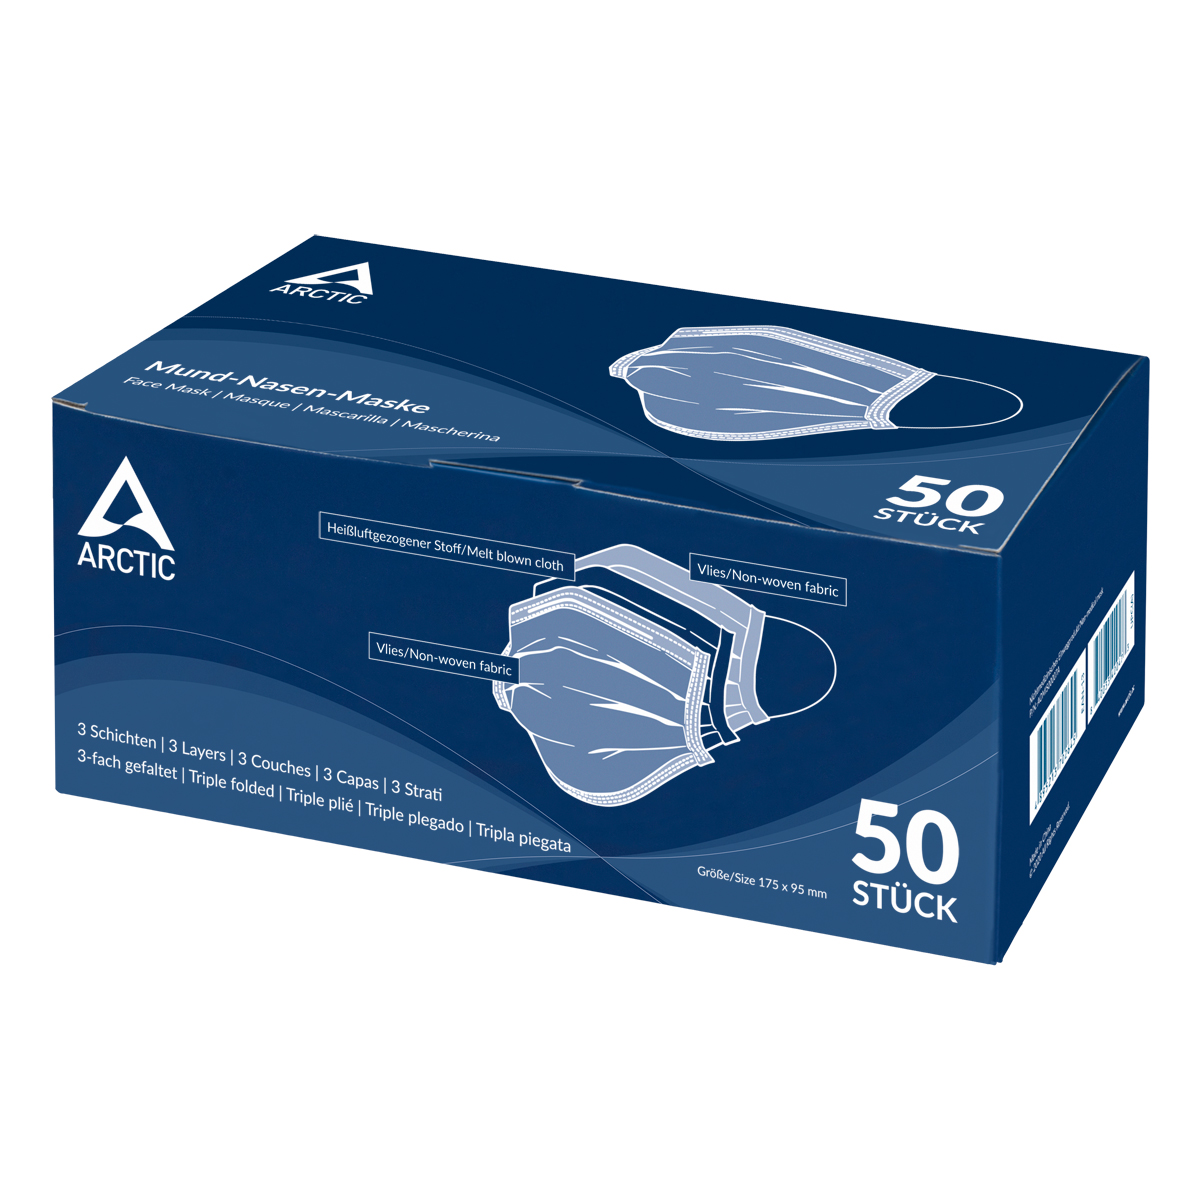 ARCTIC Nose and Mouth Mask Packaging Front View